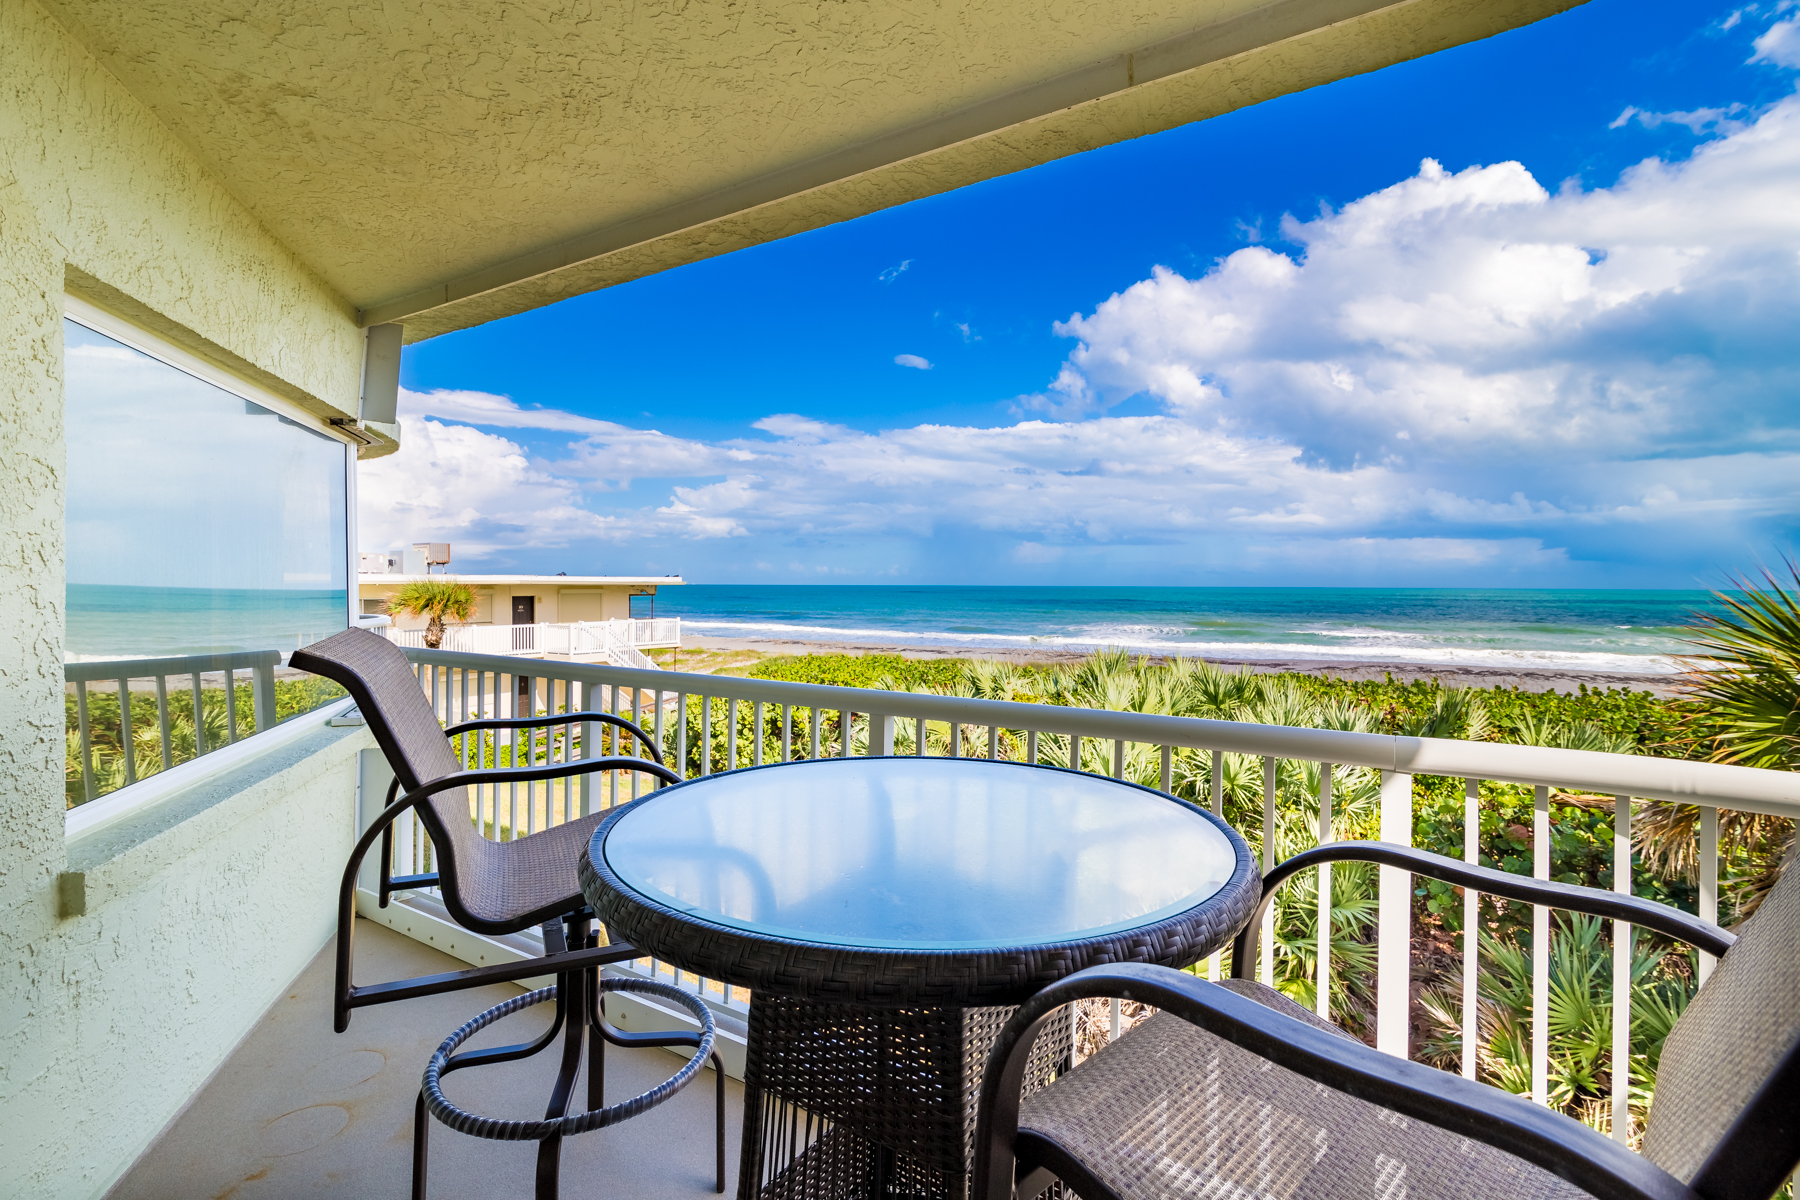 Casa Playa 3031 South Atlantic Avenue #203 Cocoa Beach, Florida 32931 Vereinigte Staaten